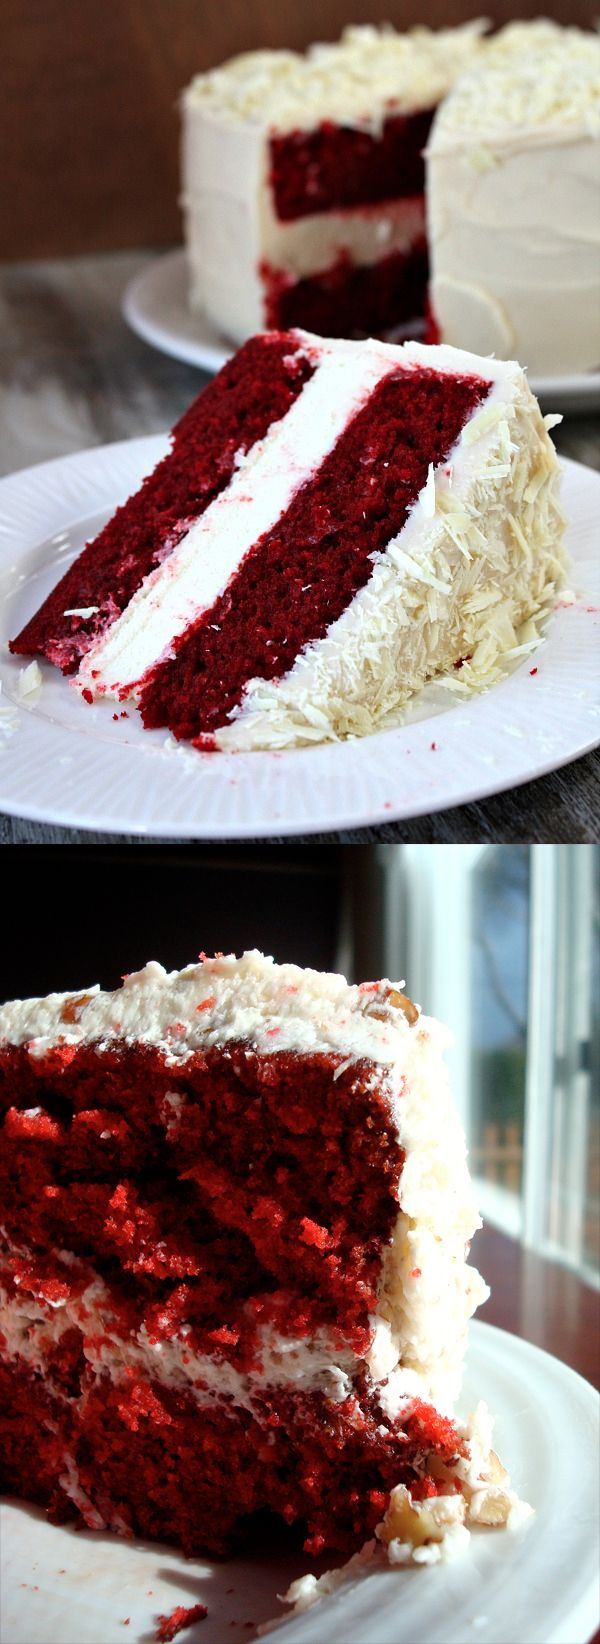 The Most Delicious Red Velvet Cake - Perfect for Valentine's Day